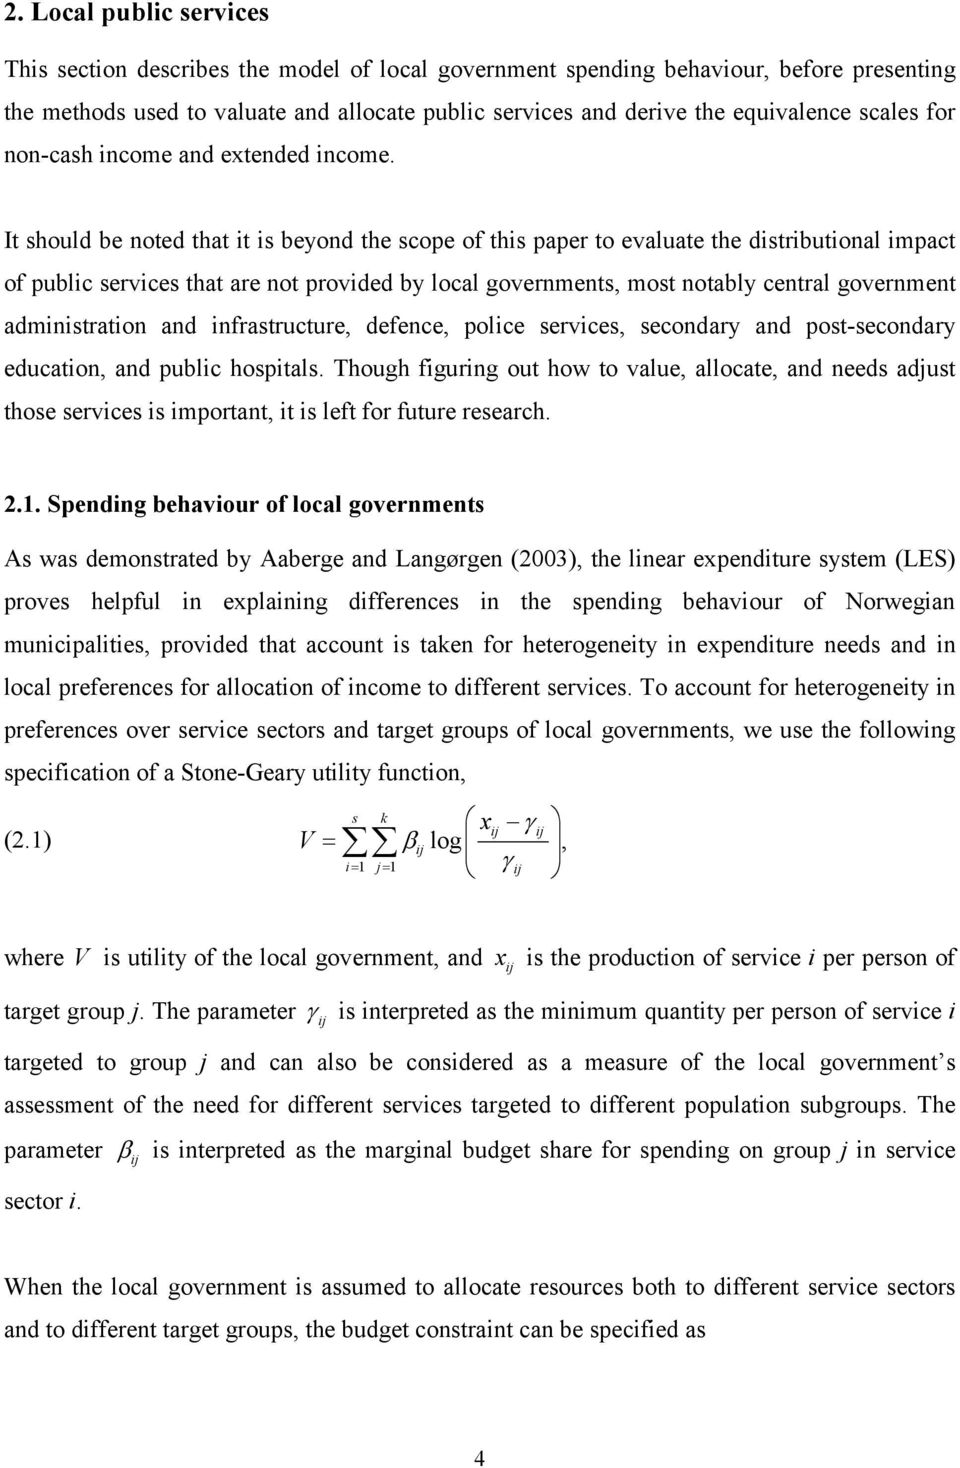 It should be noted that it is beyond the scope of this paper to evaluate the distributional impact of public services that are not provided by local governments, most notably central government